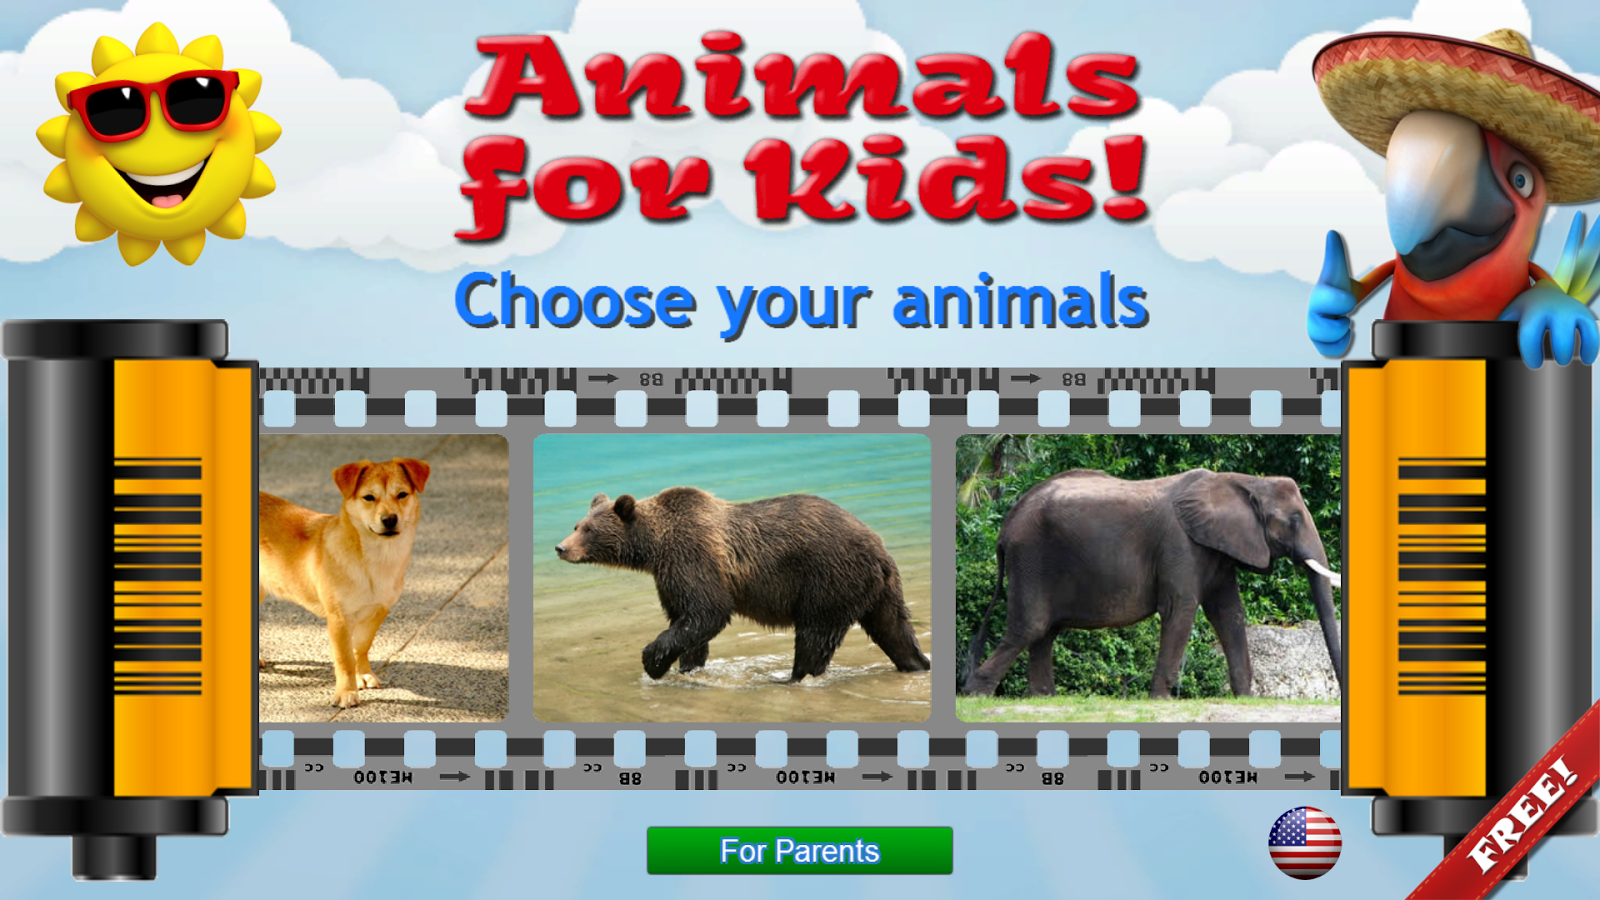 animals for kids planet earth animal sounds screenshot - Pics Of Animals For Kids